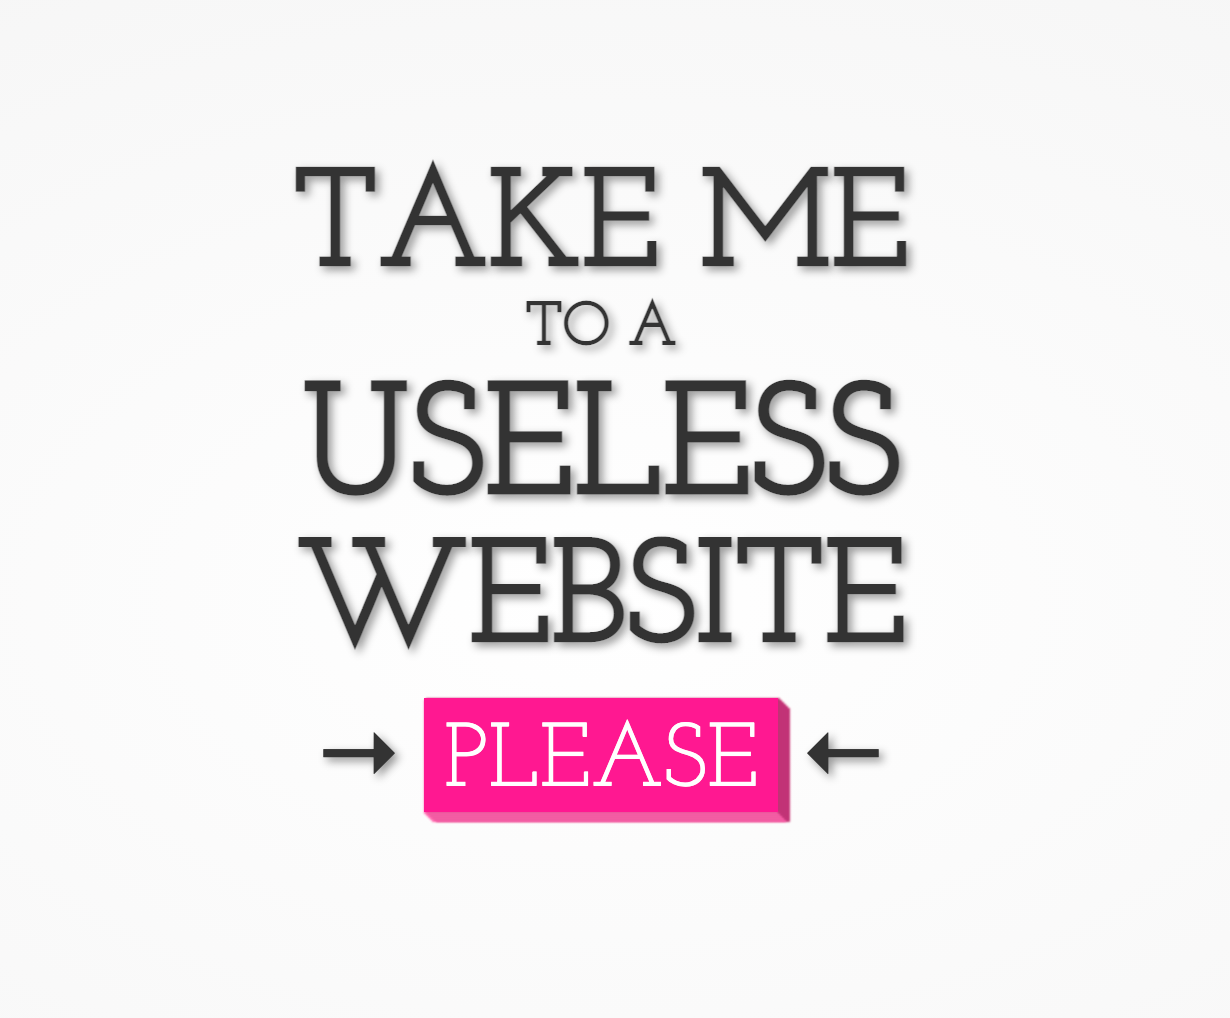 The useless website landing page